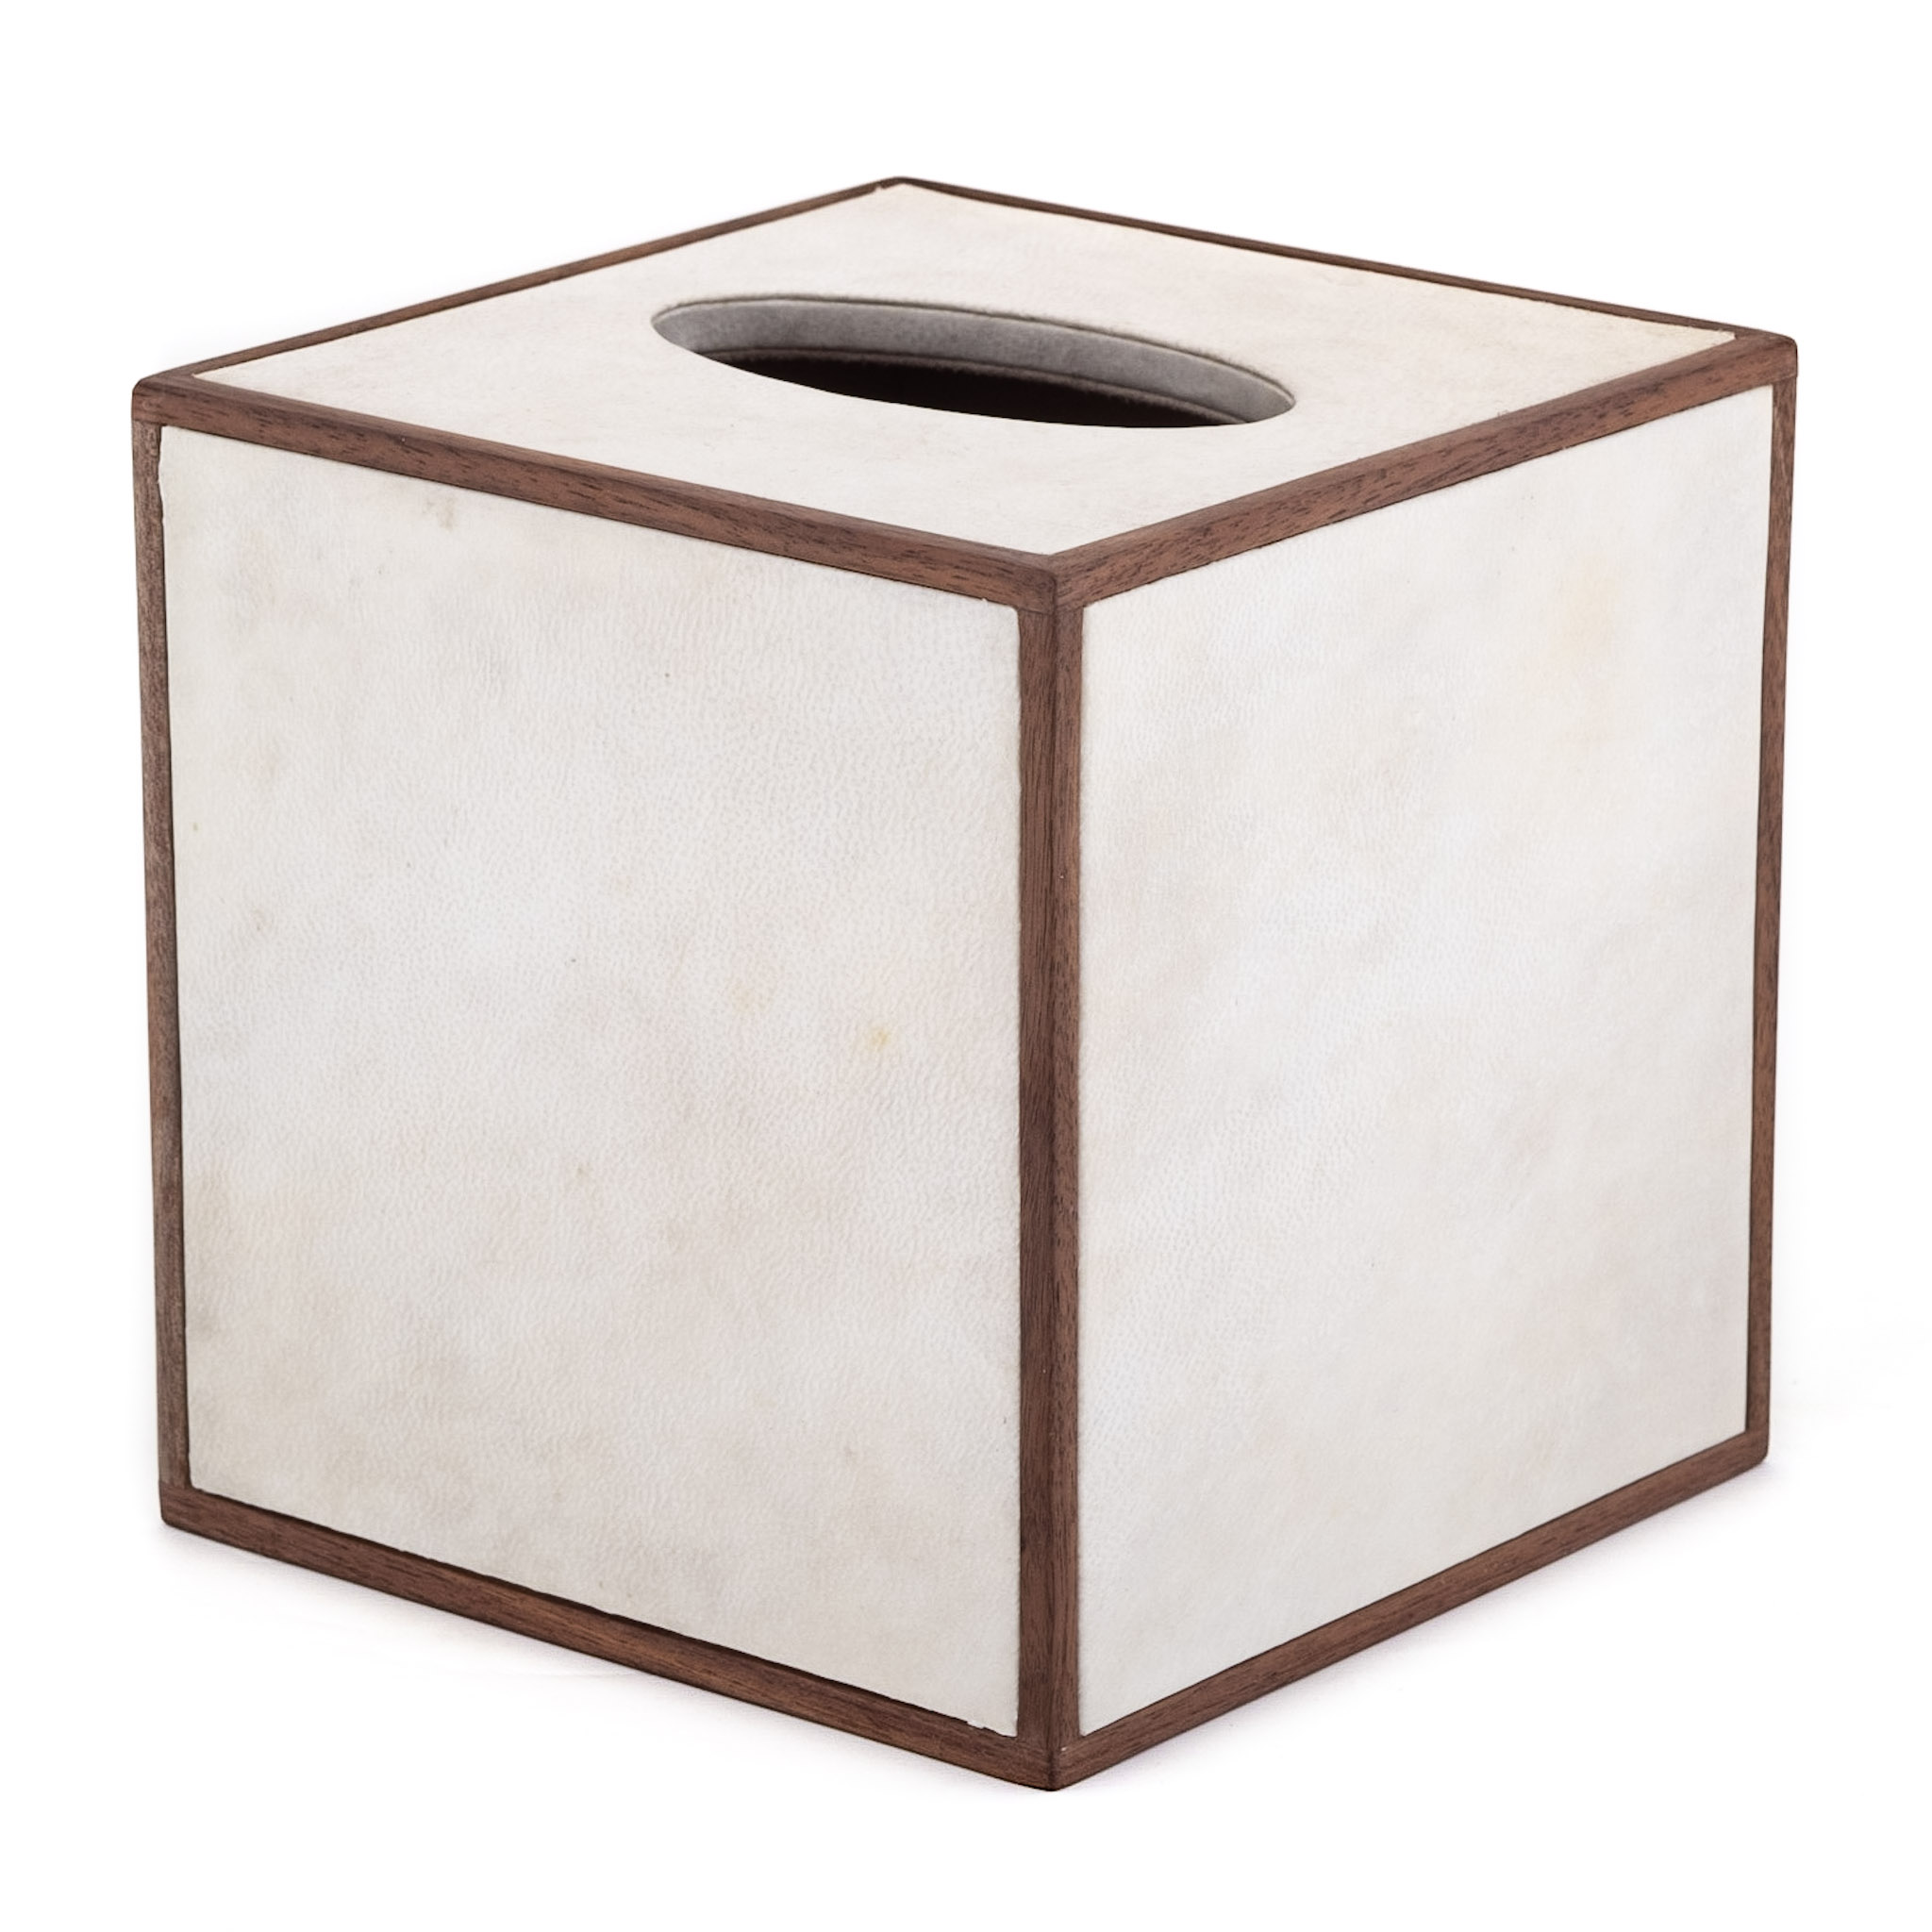 Square Tissue Box Cover Holder Ivory Leather Wood